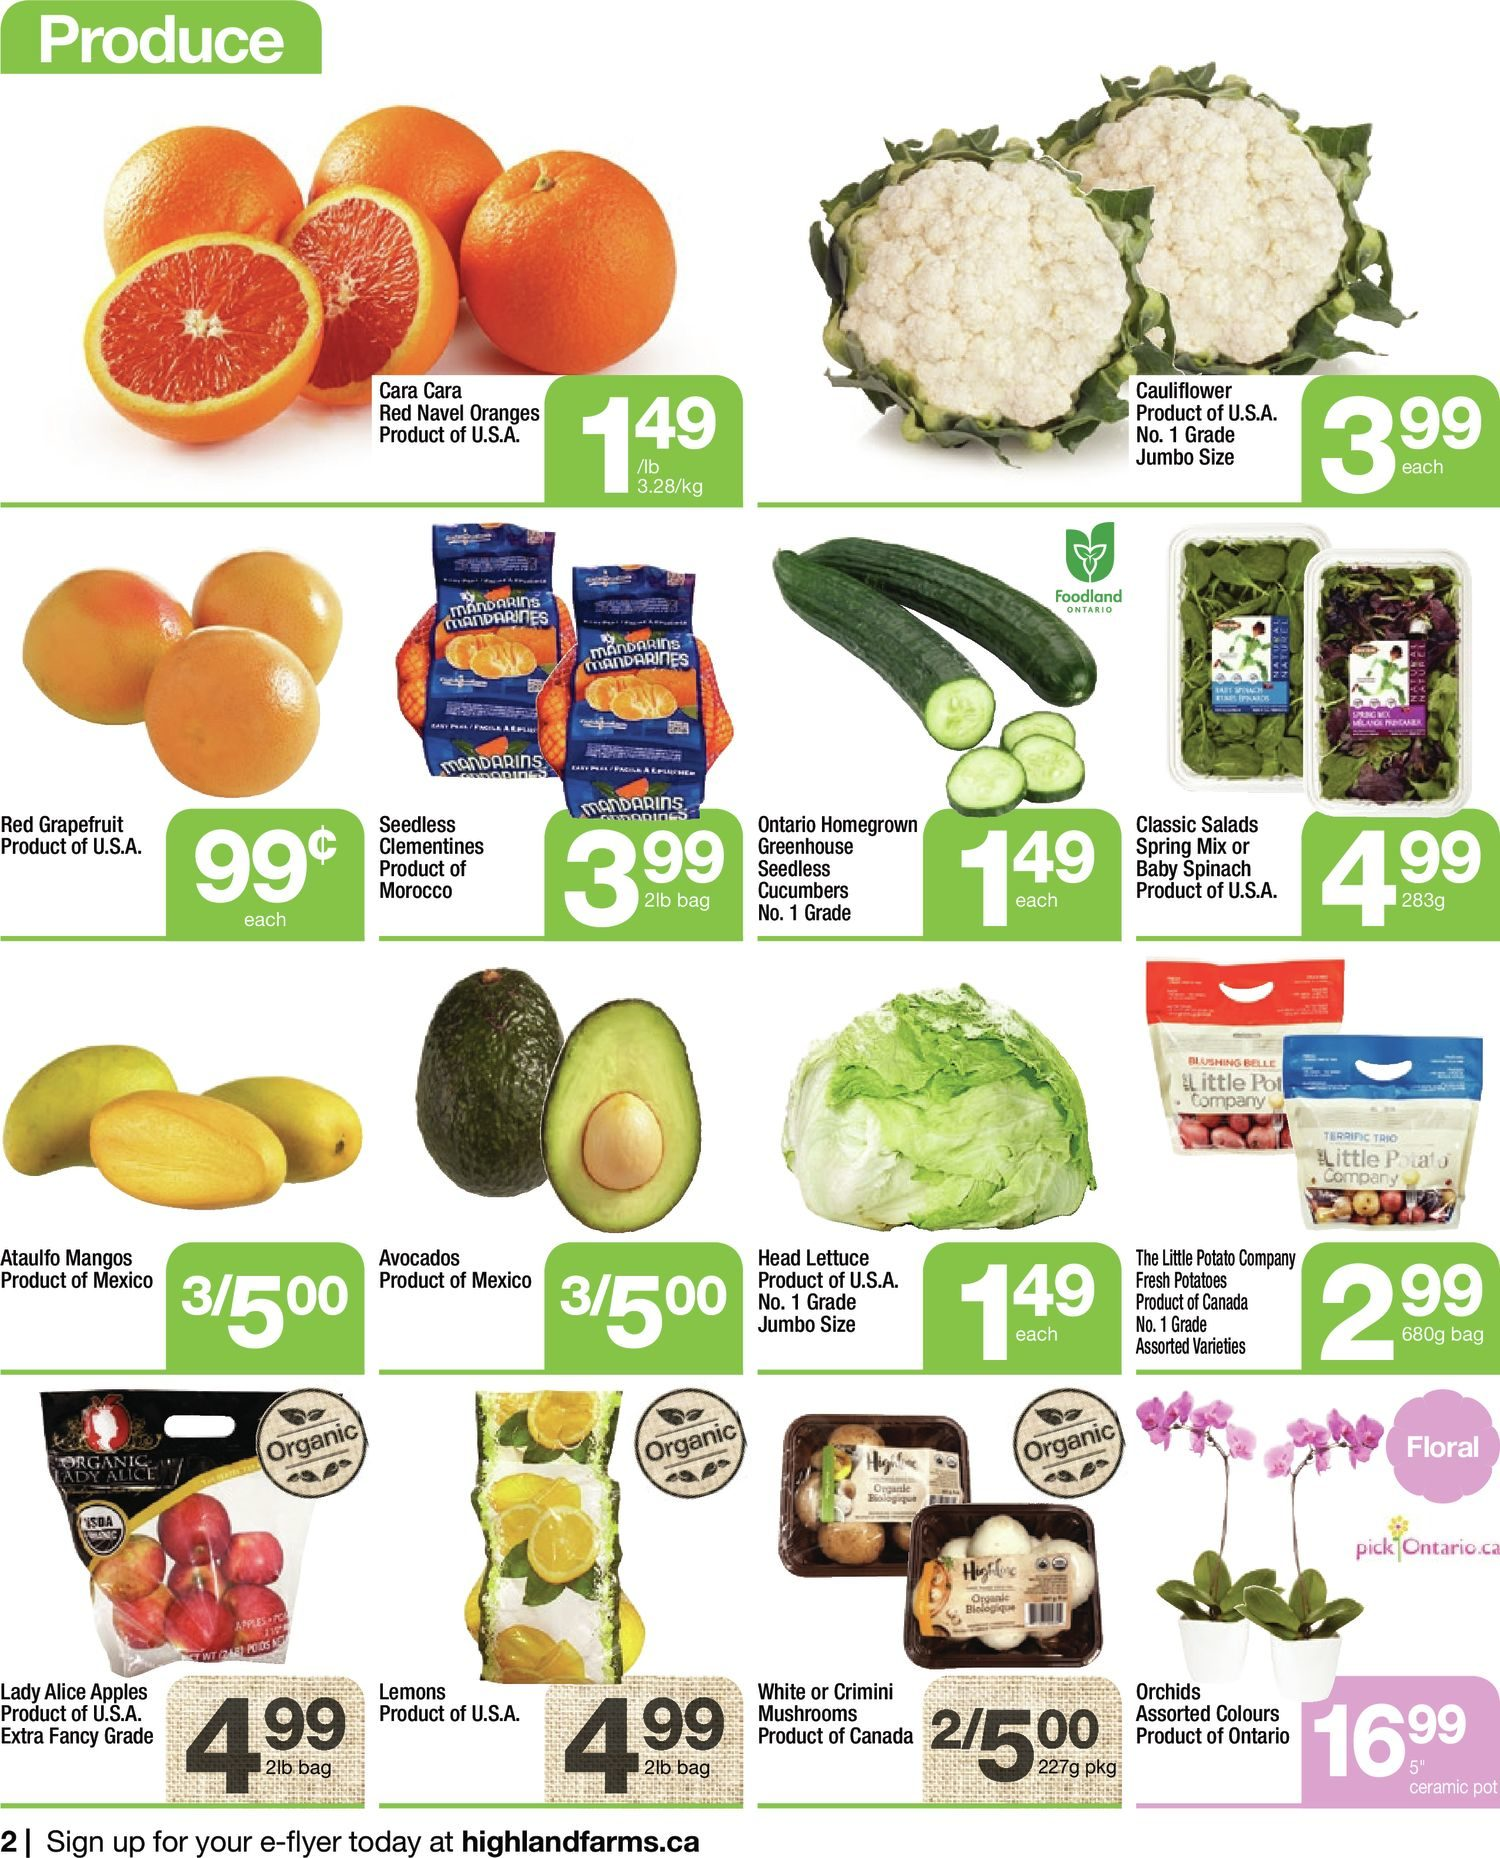 Highland Farms - Weekly Flyer Specials - Start Fresh - Page 2